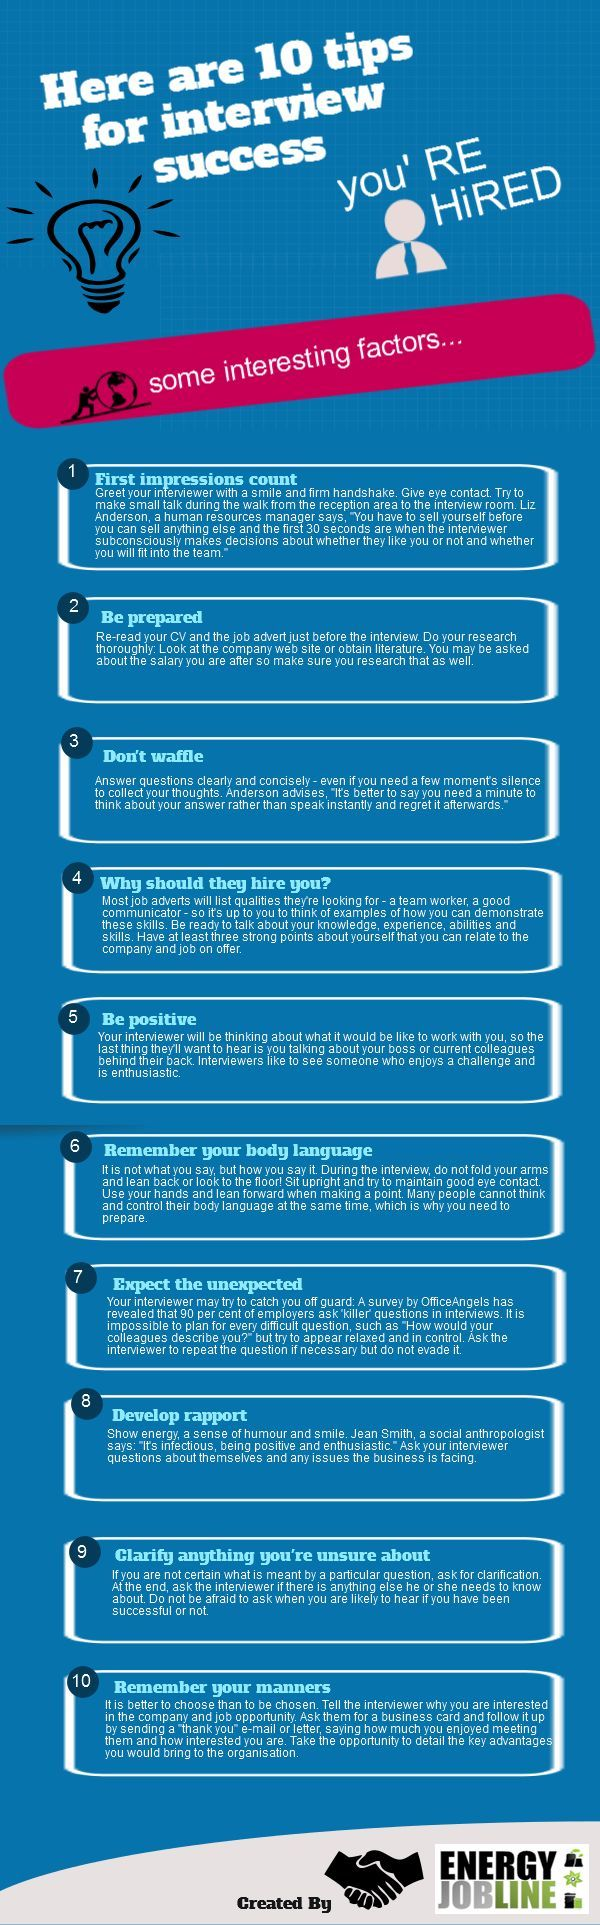 Great Interview Tips! Check Out Bloom Talentu0027s Tips Here: Http://www